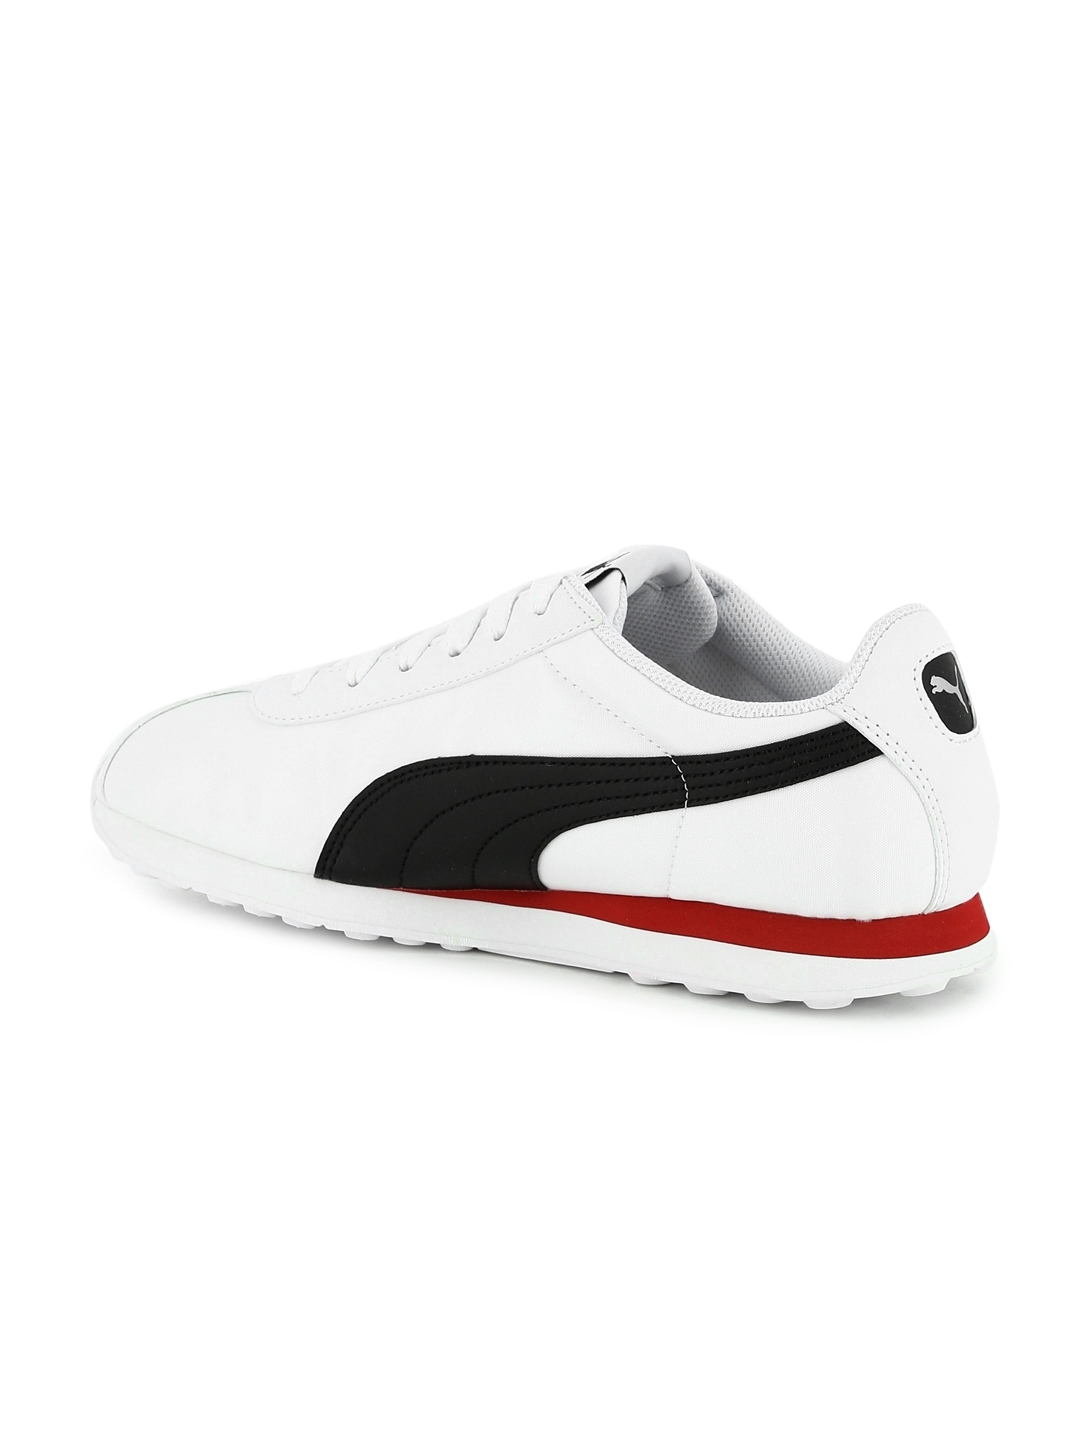 f929c406c6e1 Buy Puma Unisex White Turin NL Sneakers - Casual Shoes for Unisex ...